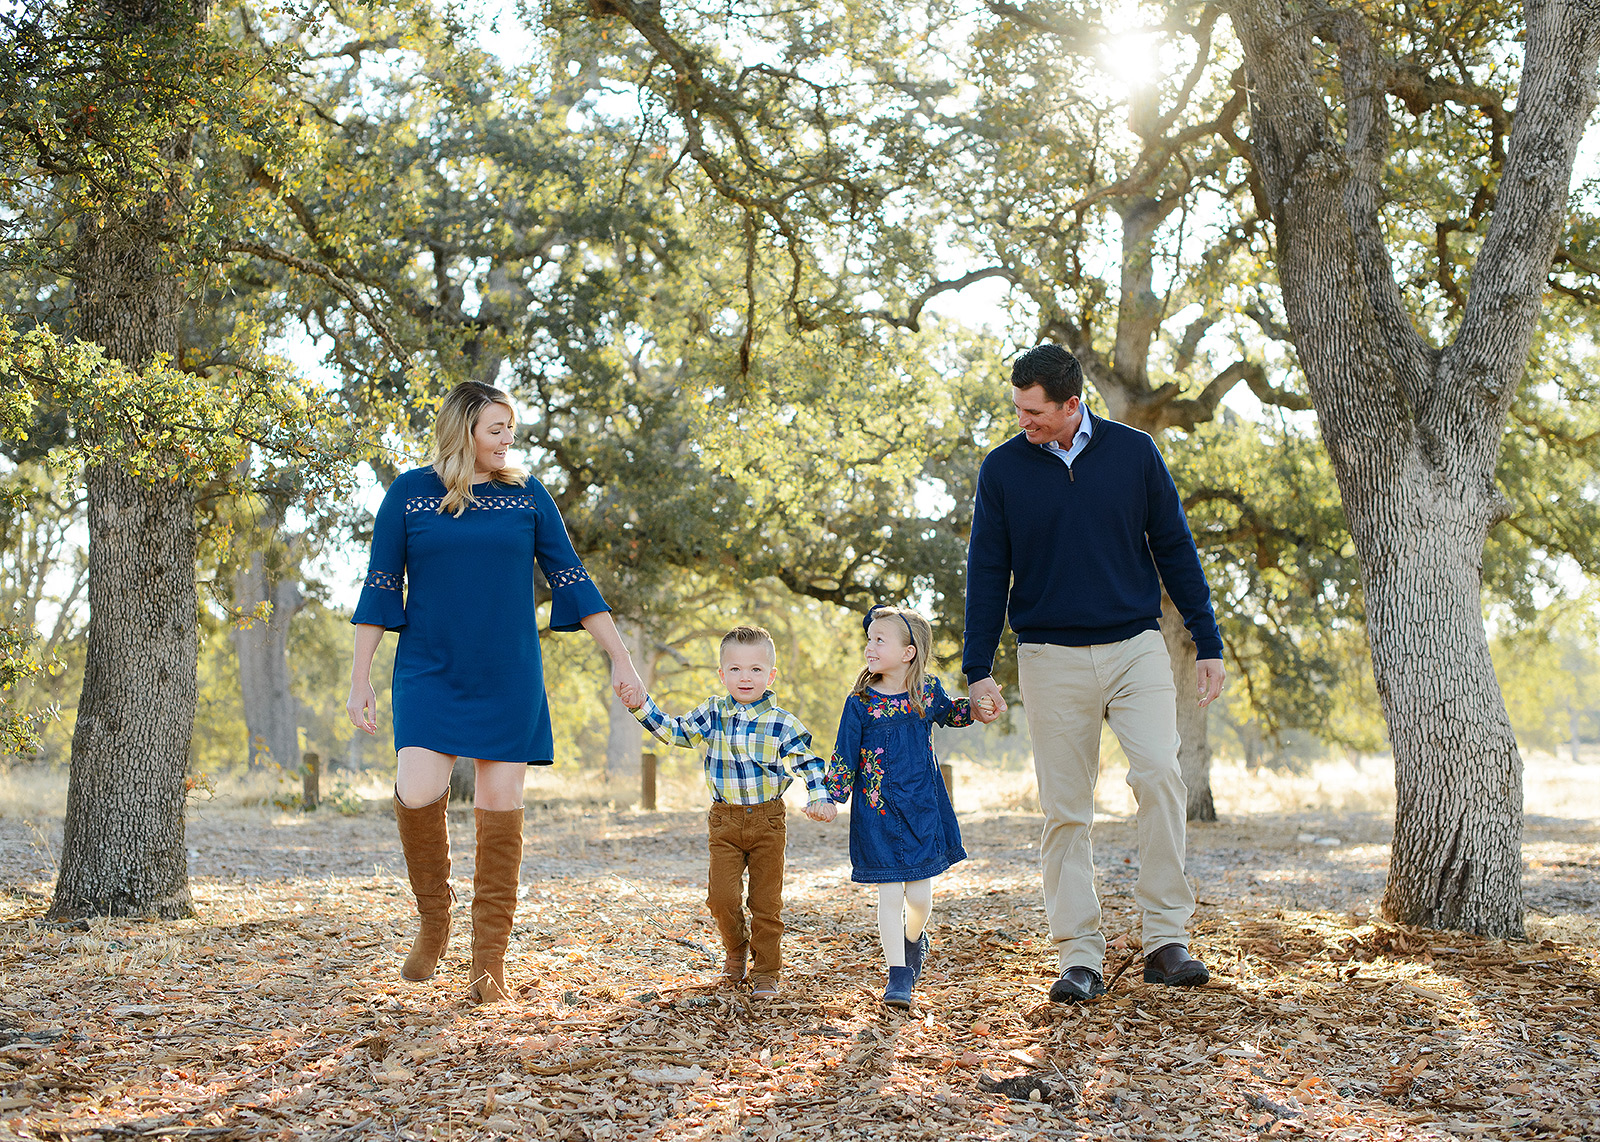 Fall Family Photos with Trees in Background in Fair Oaks Park